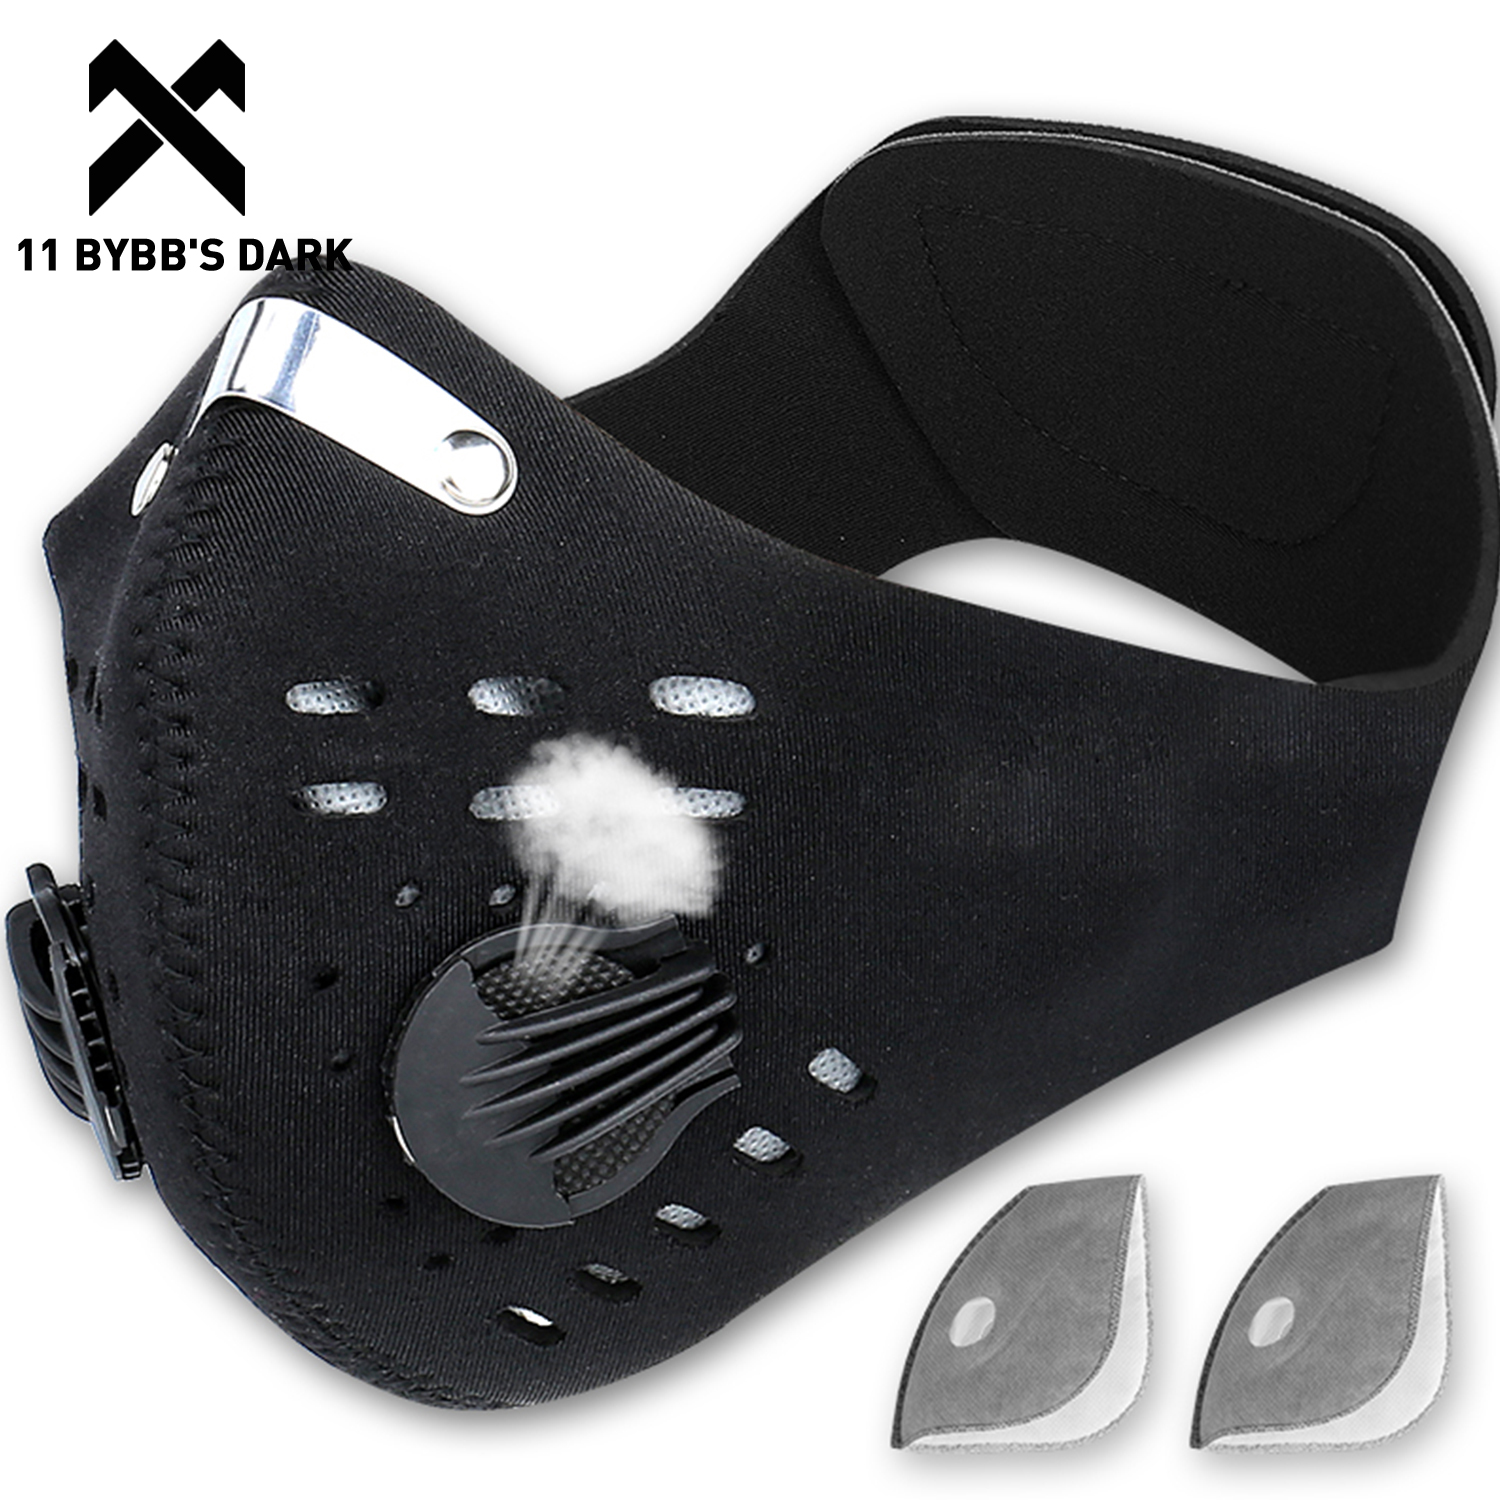 11 BYBB'S DARK Hip Hop Cycling Face Mask Filter PM2.5 Anti-fog Breathable Masks 2020 Anti-Pollution Sport Bike Training Facemask